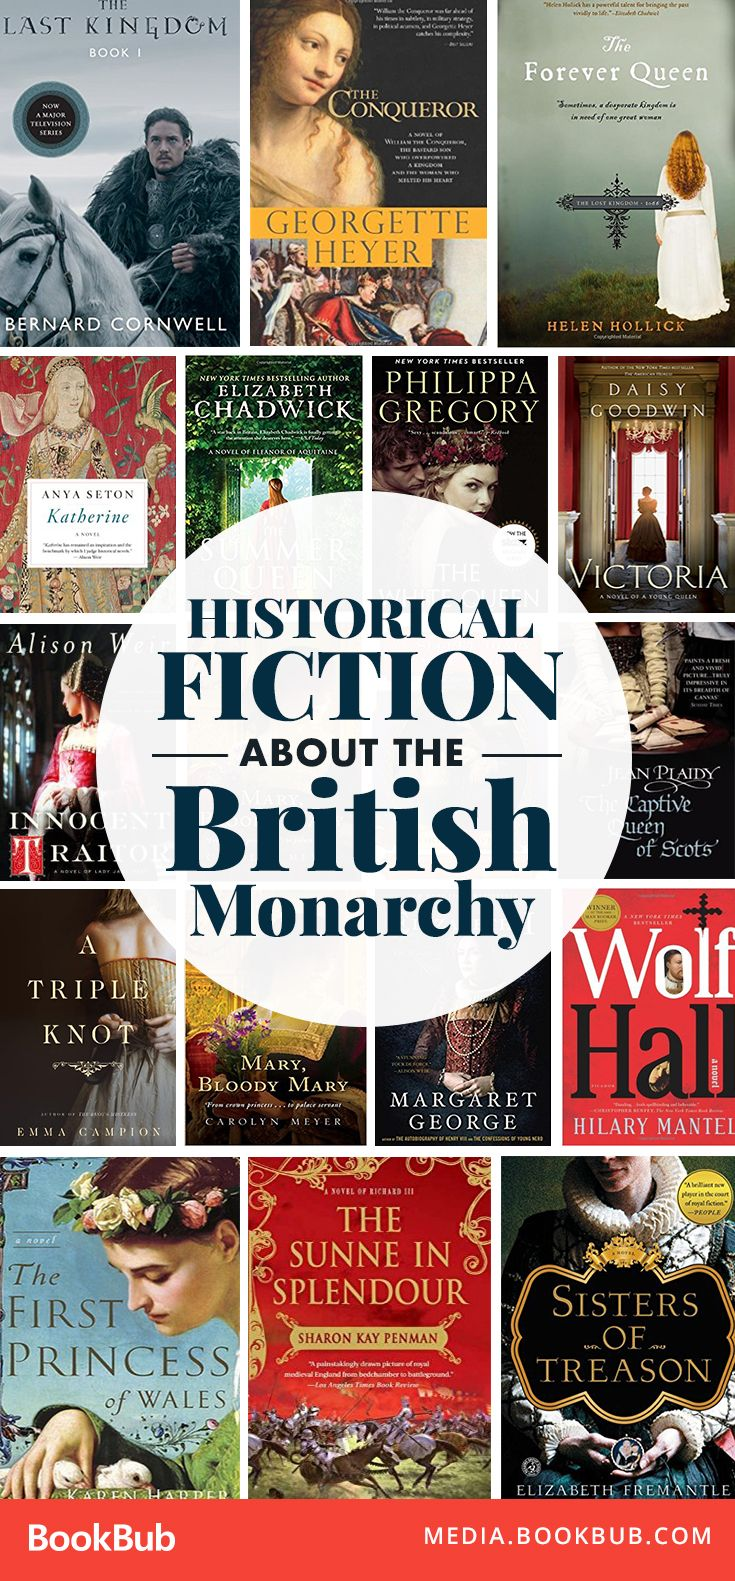 18 Historical Fiction Books About the British Monarchy is part of Historical fiction books, Historical books, Fiction books, Historical fiction, Books, Romance books - Which of these books would you recommend